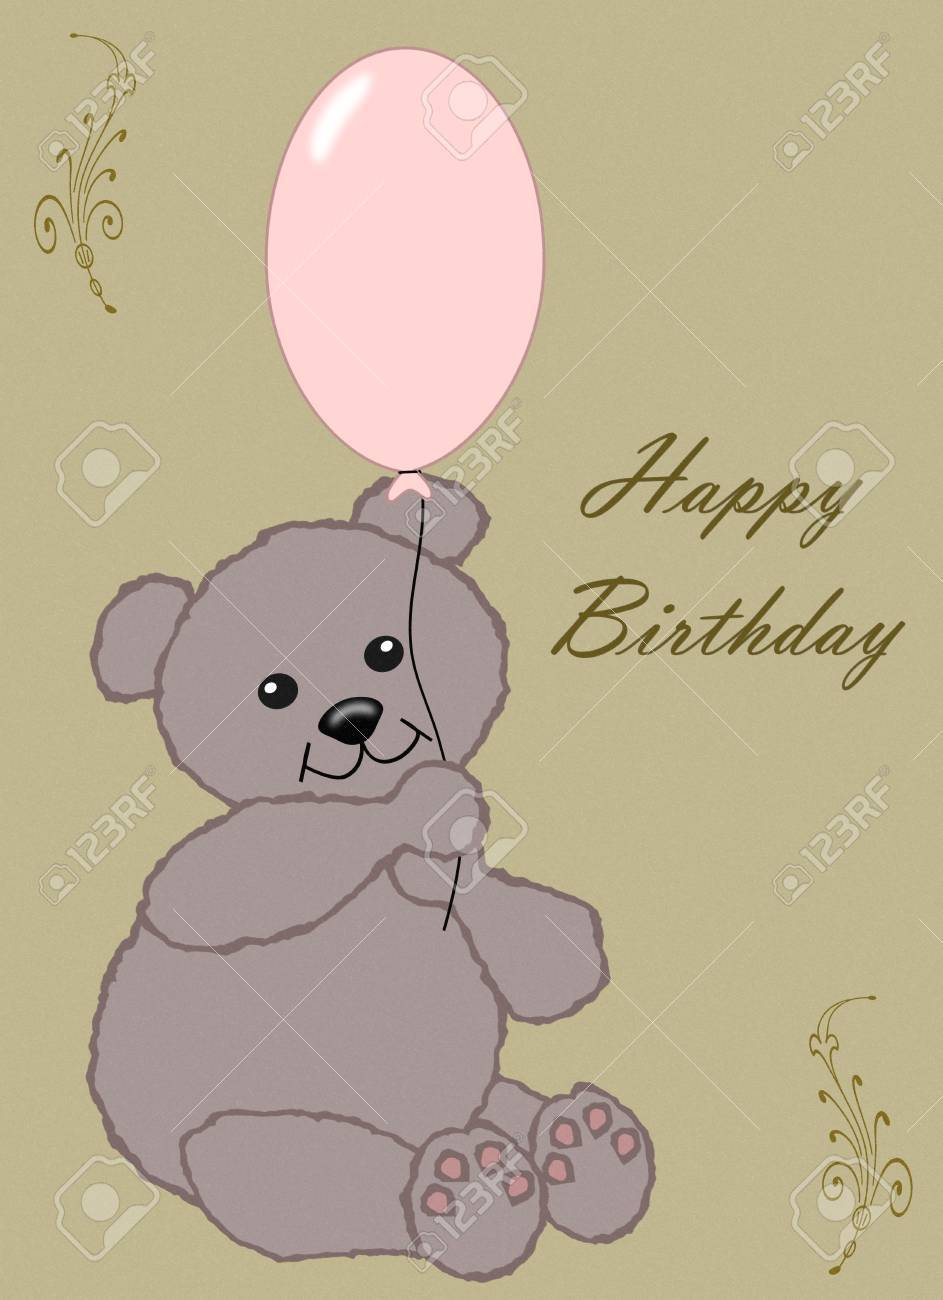 Happy Birthday - little brown teddy with pink balloon Stock Photo - 14390018